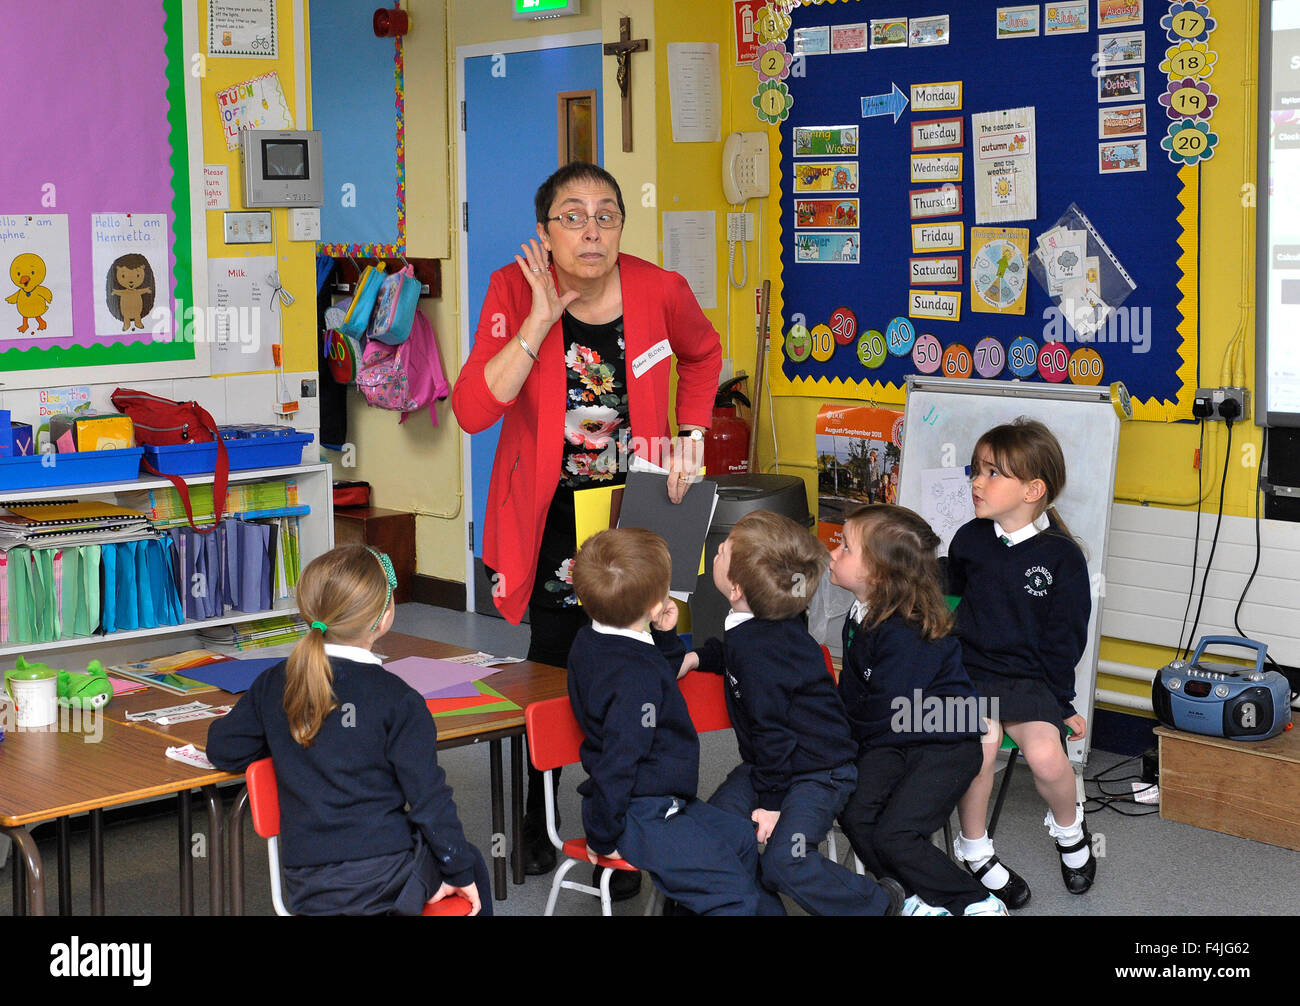 Primary school children in Northern Ireland learning French language. ©George Sweeney/Alamy - Stock Image